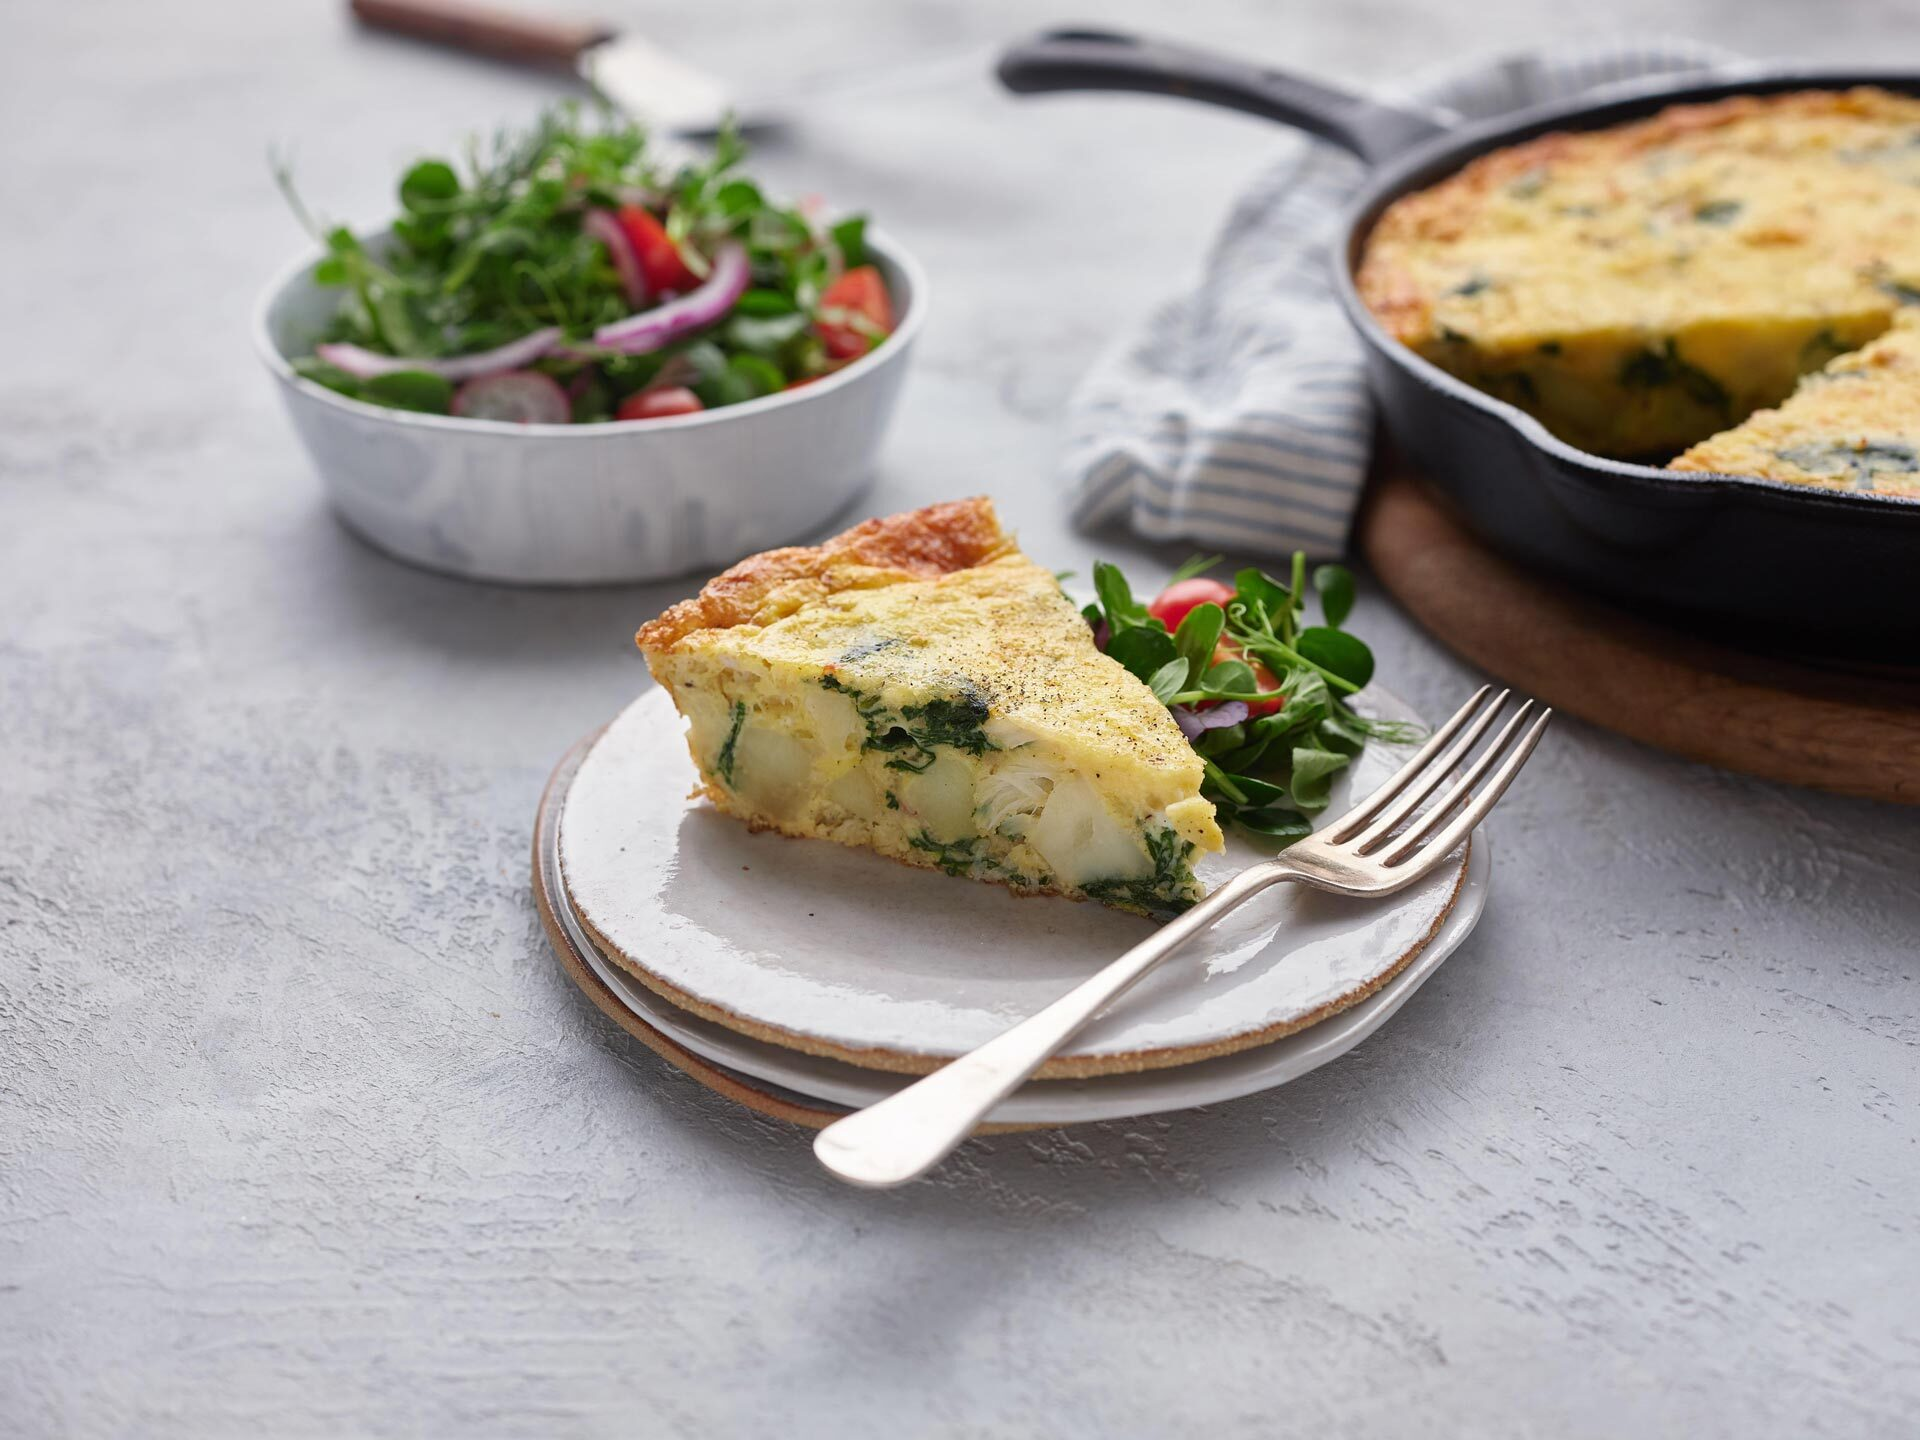 Crab, Spinach and Potato Frittata